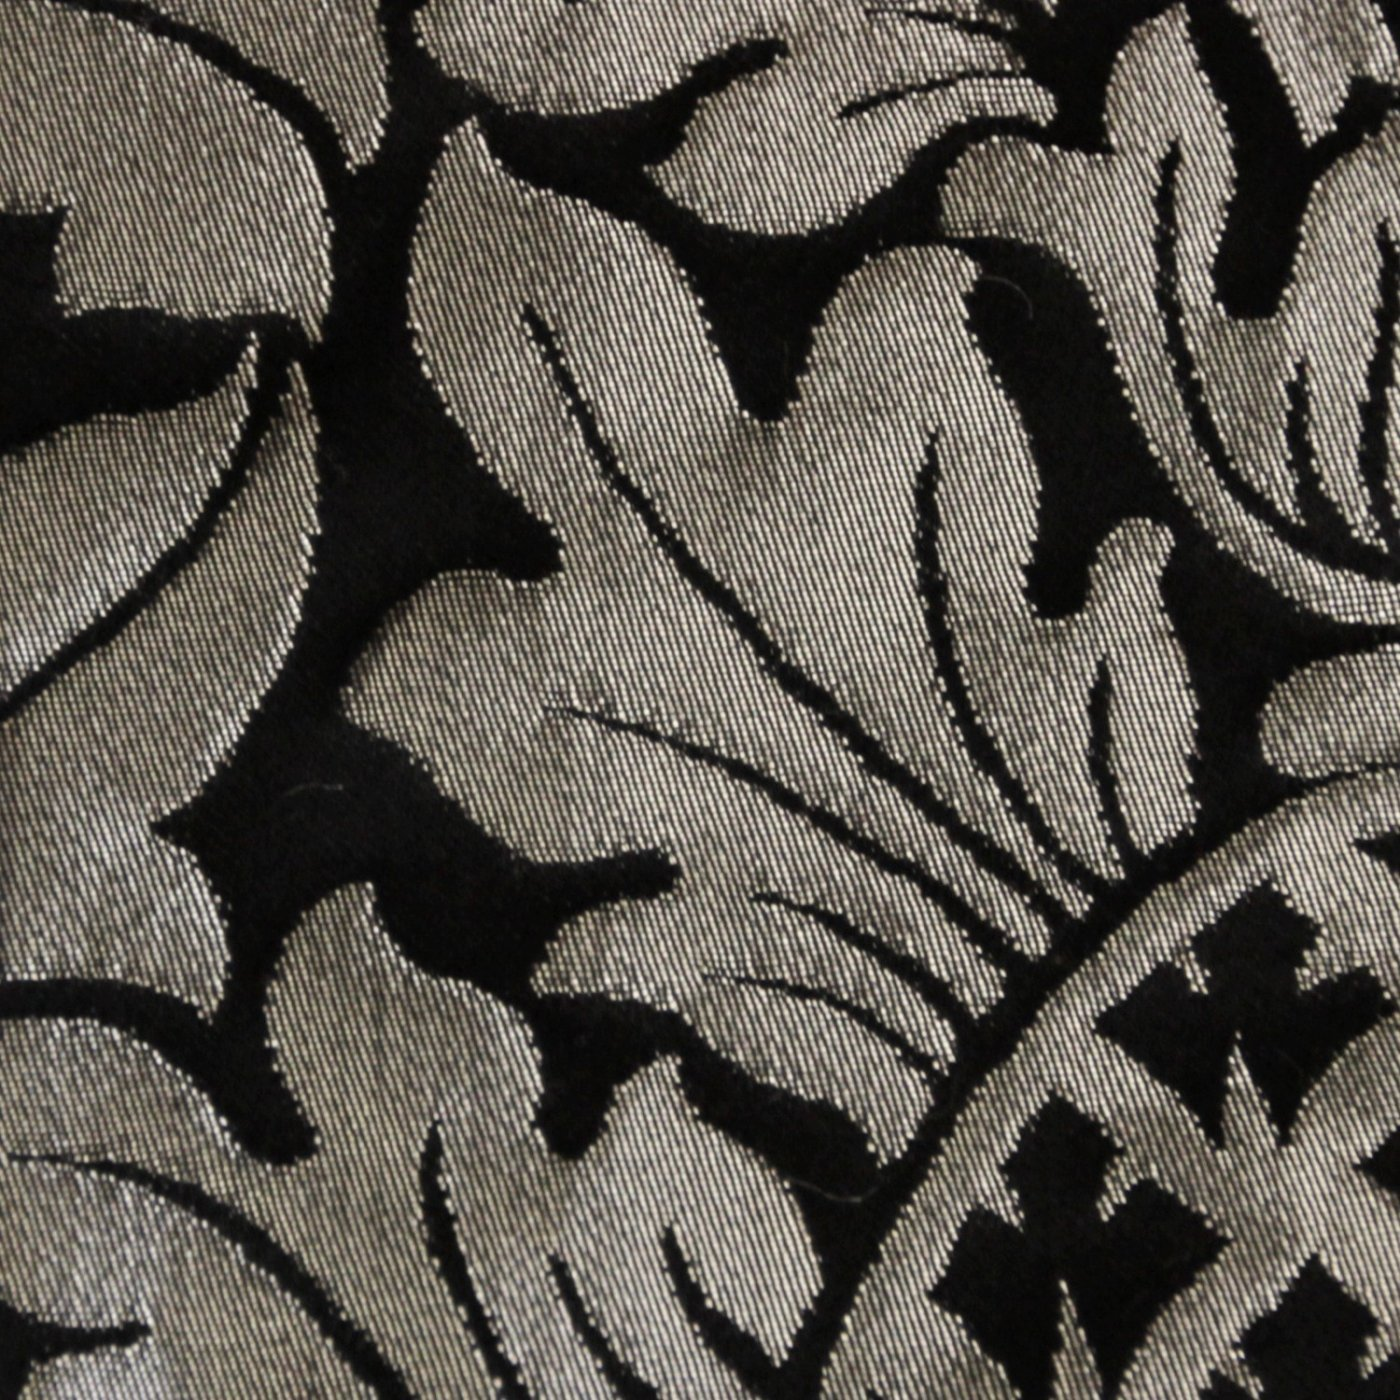 Continental Stole in Black & Silver Fairford Brocade - Watts & Co. (international)